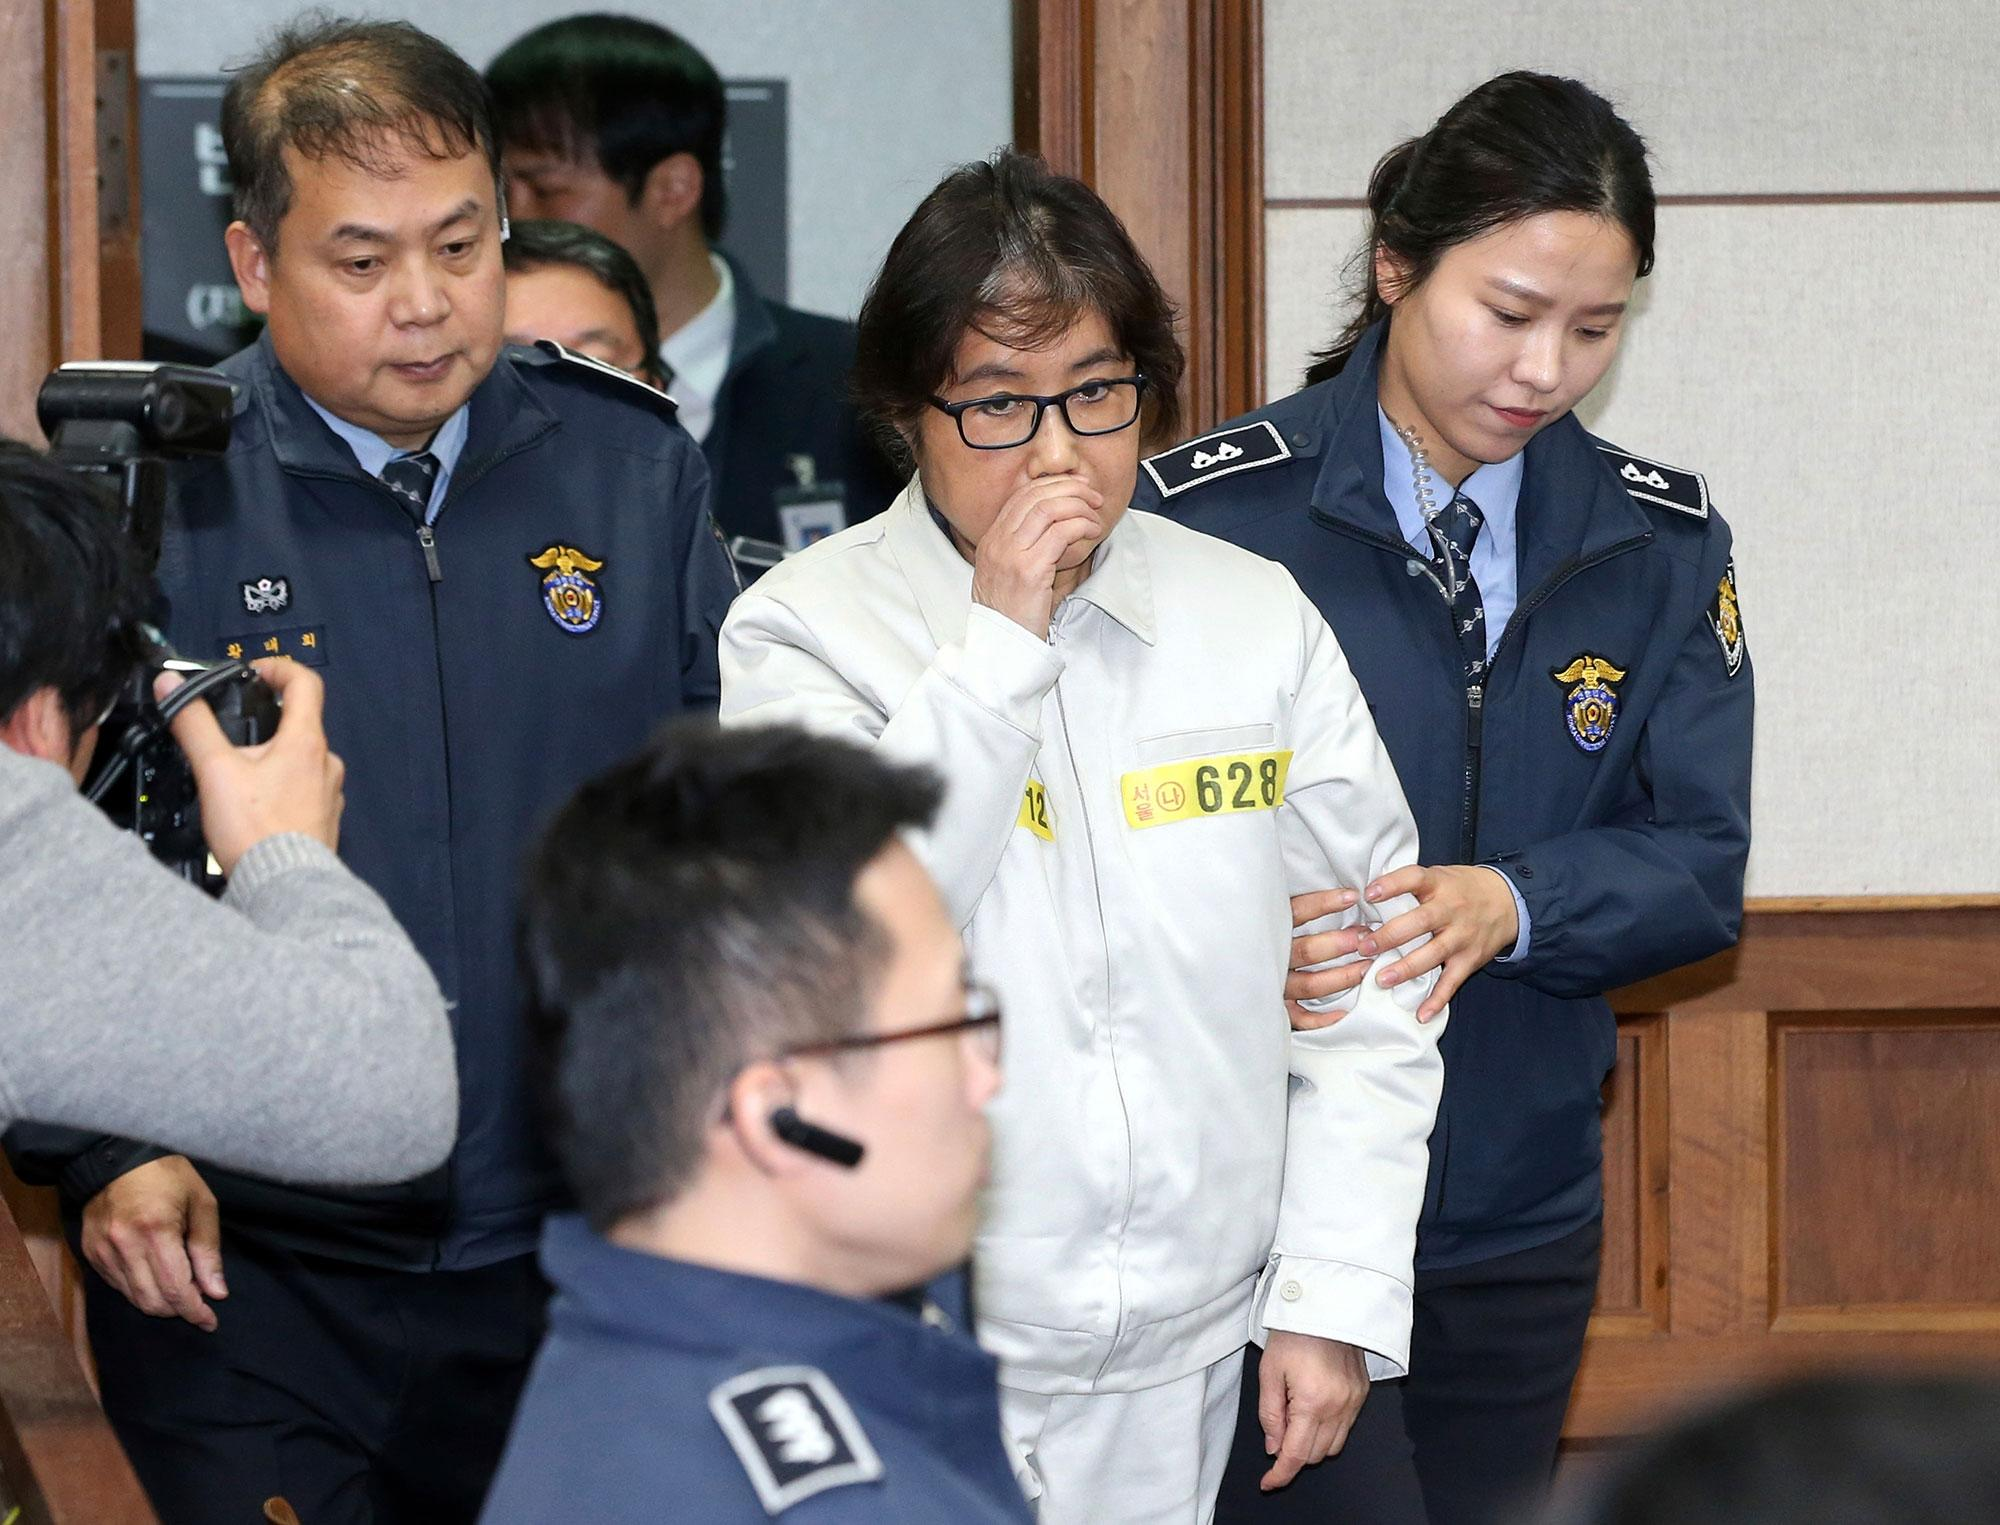 <p>Choi Soon-sil, the jailed confidante of disgraced South Korean President Park Geun-hye, center, appears for the first day of her trial at the Seoul Central District Court in Seoul, South Korea, Monday, Dec. 19, 2016. (Photo: Korea Pool Photo via AP) </p>